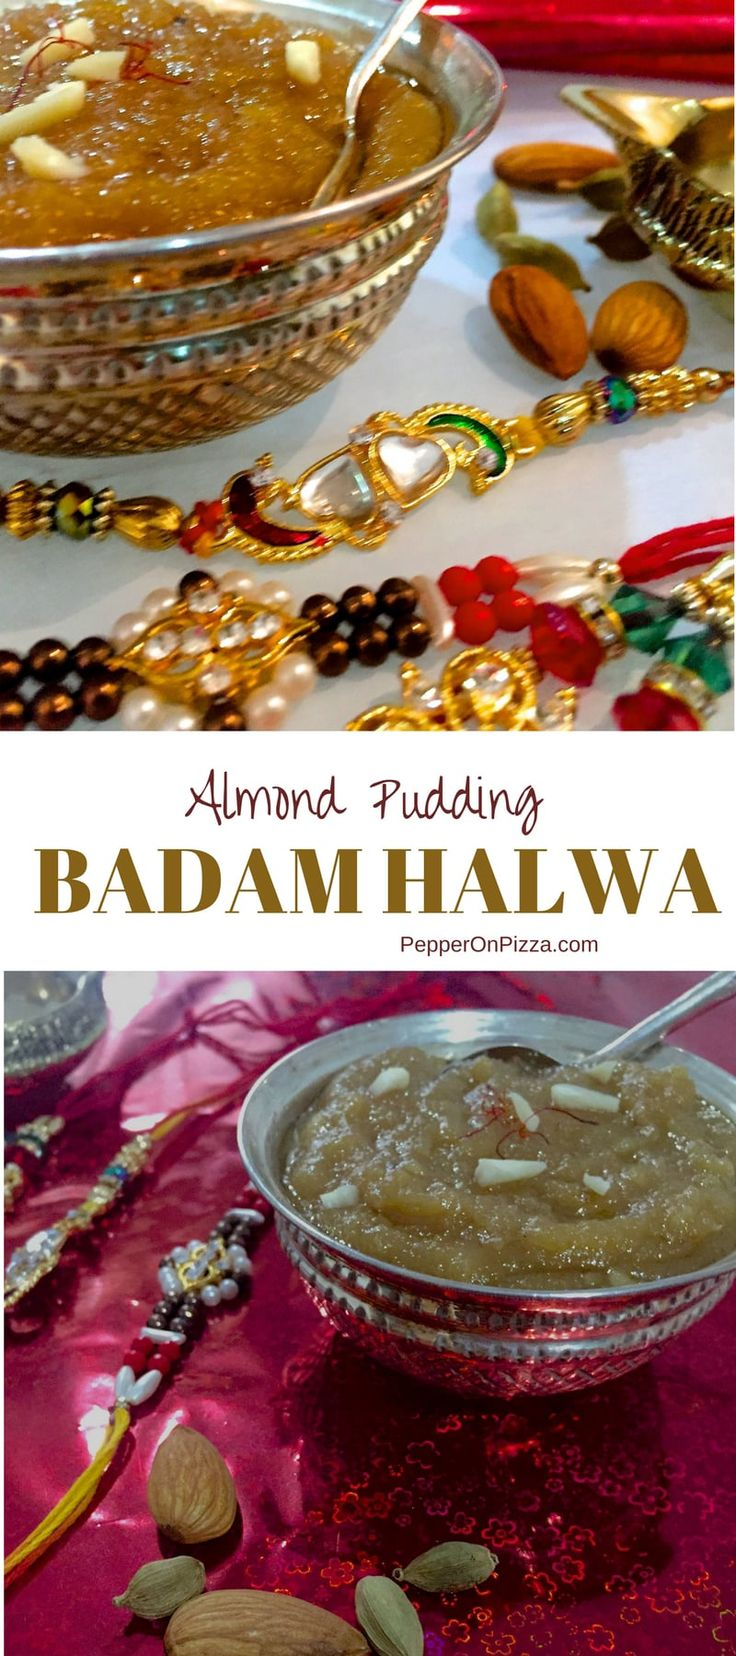 An easy and delicious sweet to add to a festival platter. Ground almonds sautéed in ghee, sugar and milk and flavoured with saffron and cardamom - this Badam Halwa is a rich and tasty sweet. Serve it hot, garnished with slivers of toasted almonds.